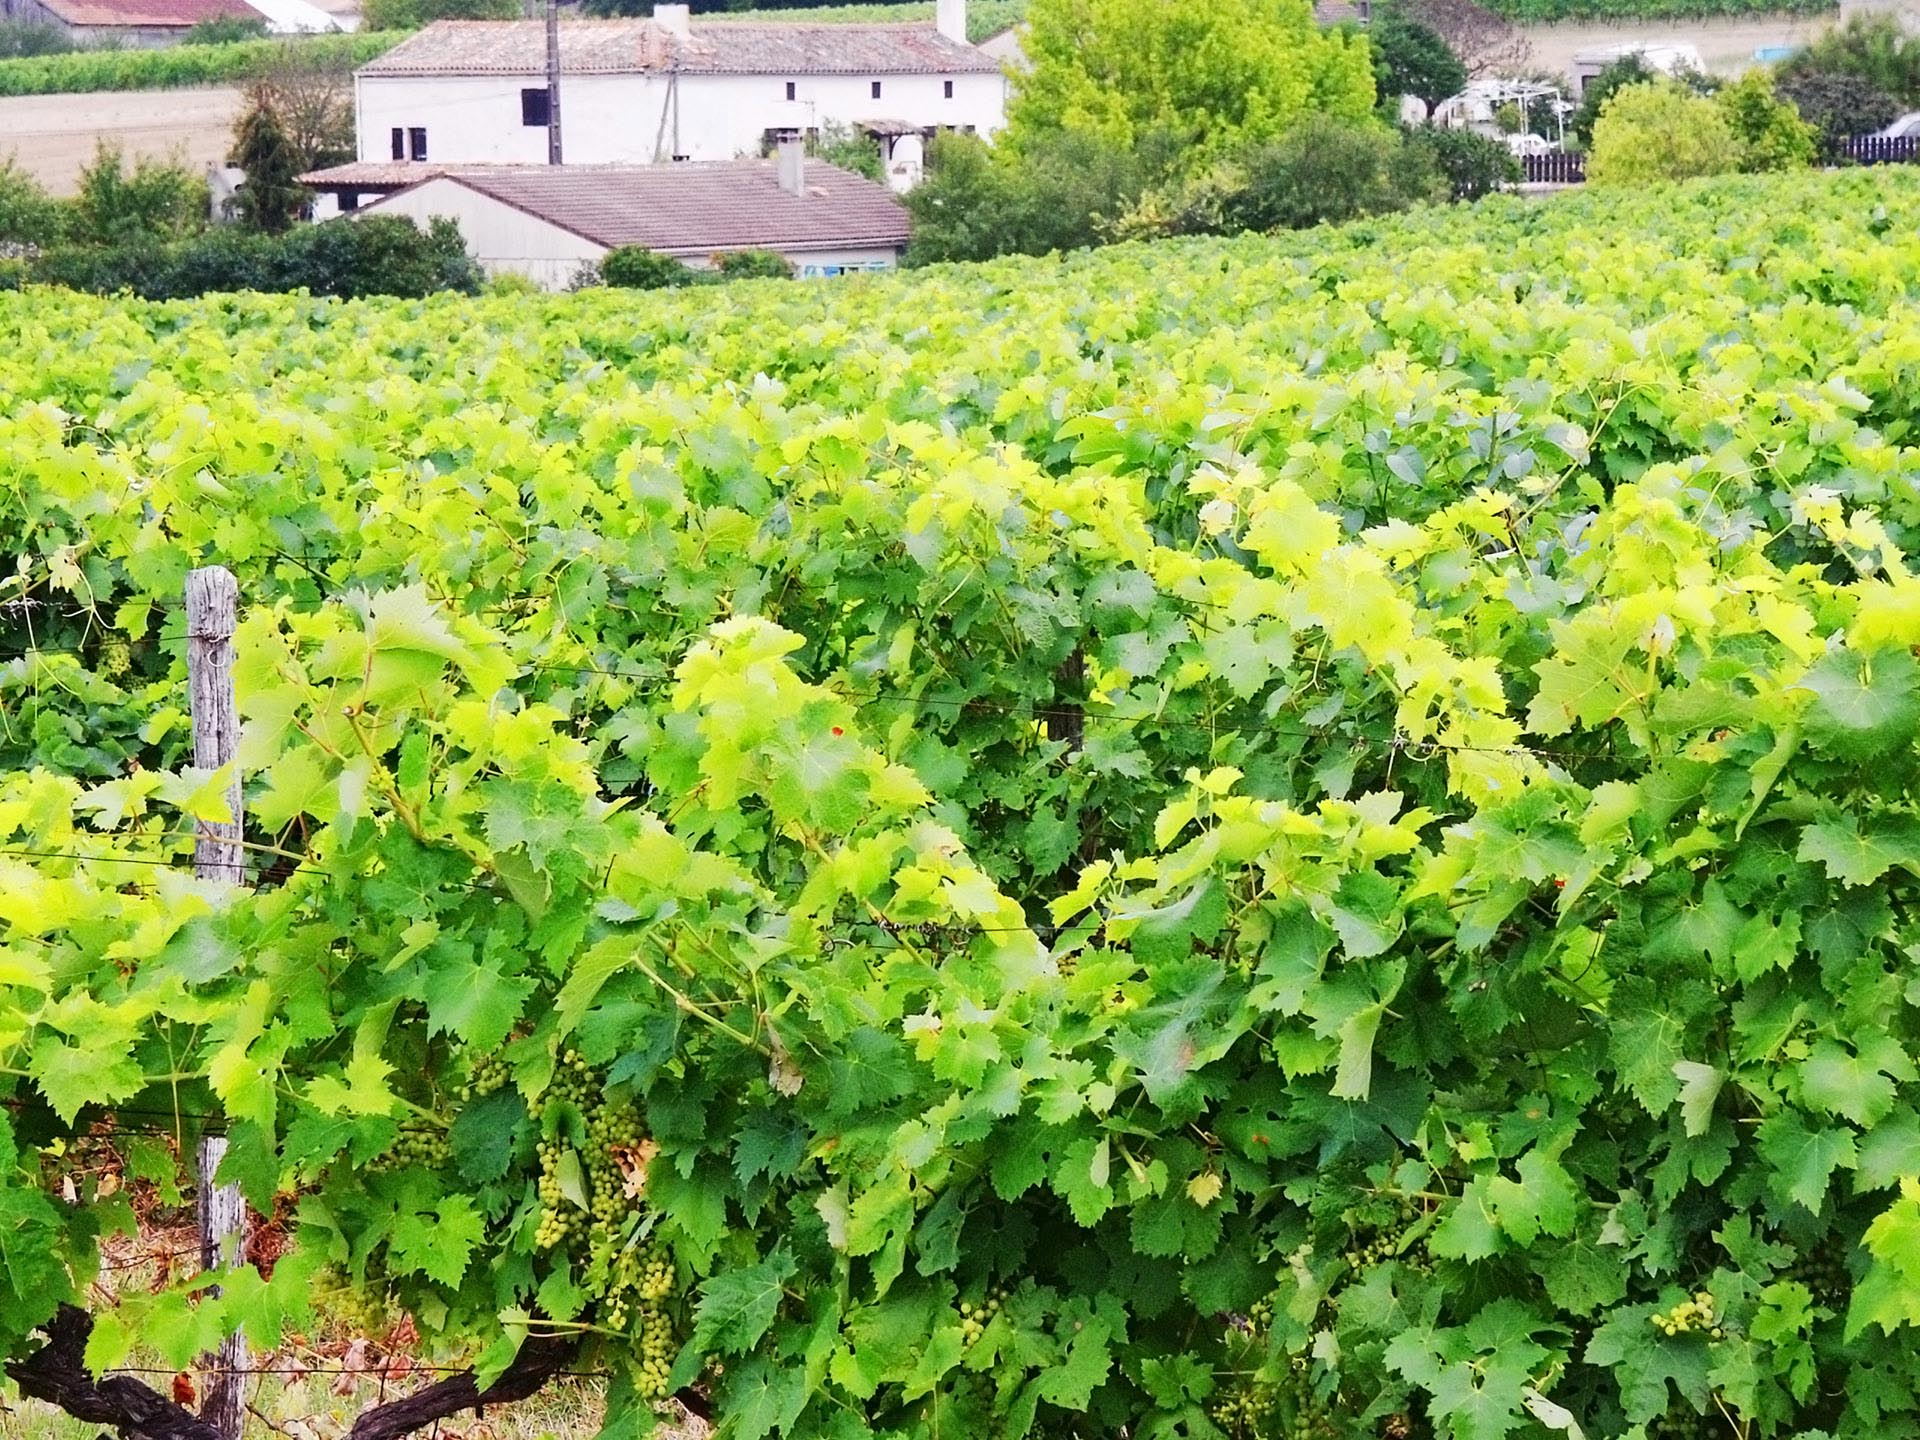 Vineyard in Cognac / Getty